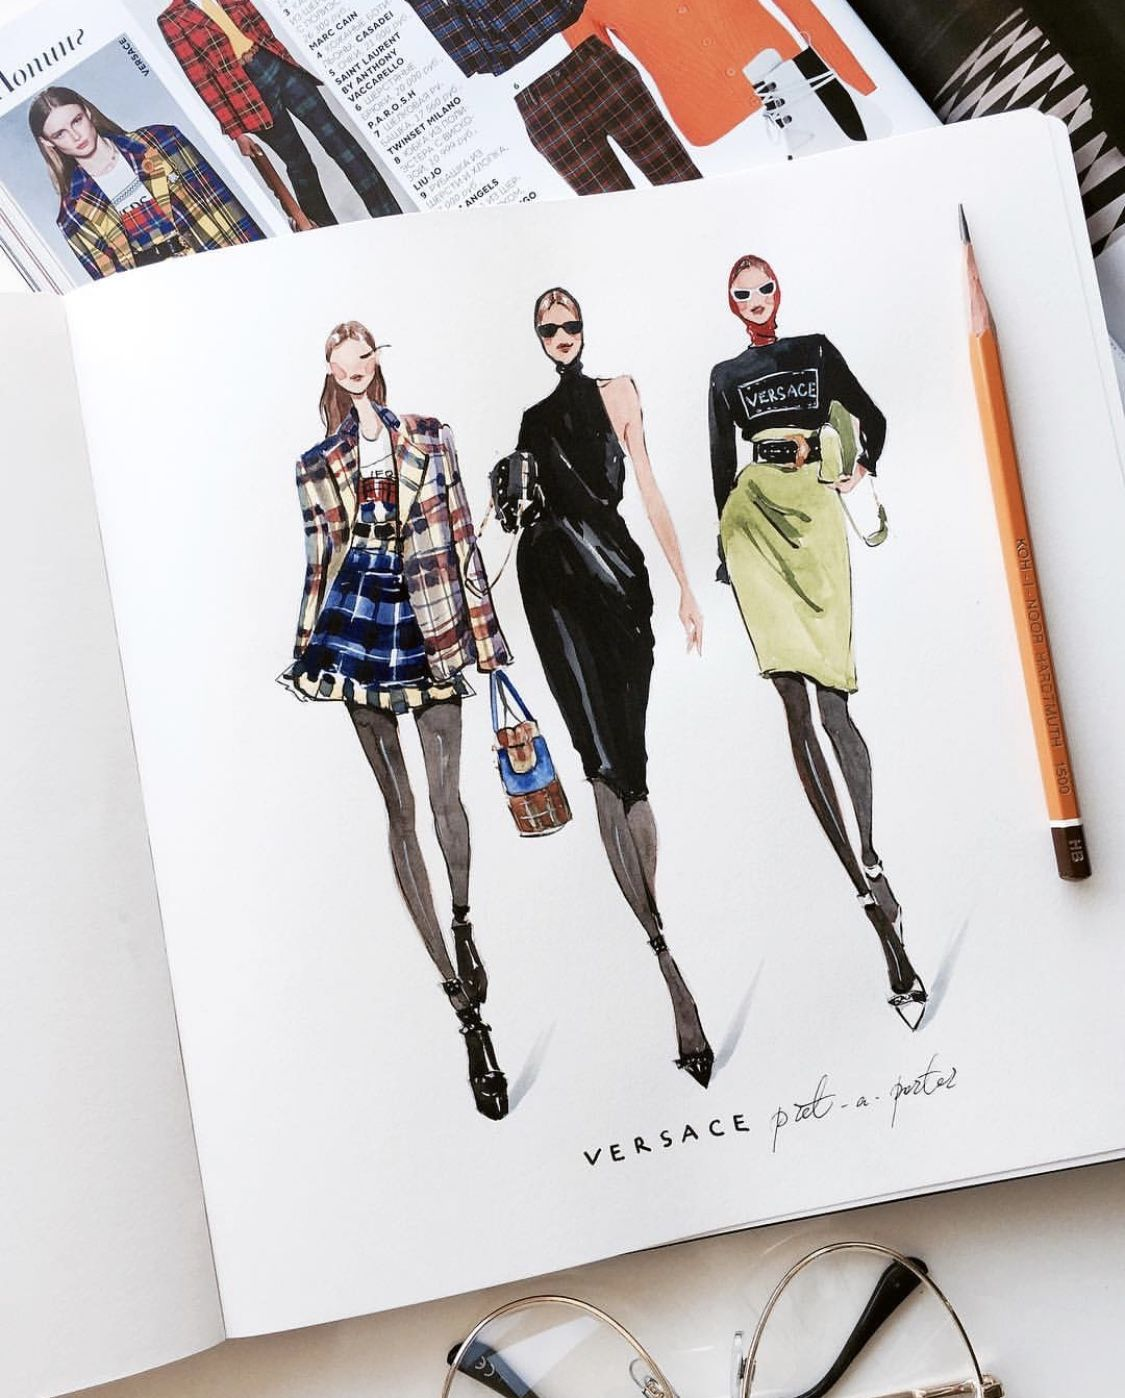 Marina Sidneva | Fashion design sketchbook, Fashion illustration sketches,  Fashion design portfolio